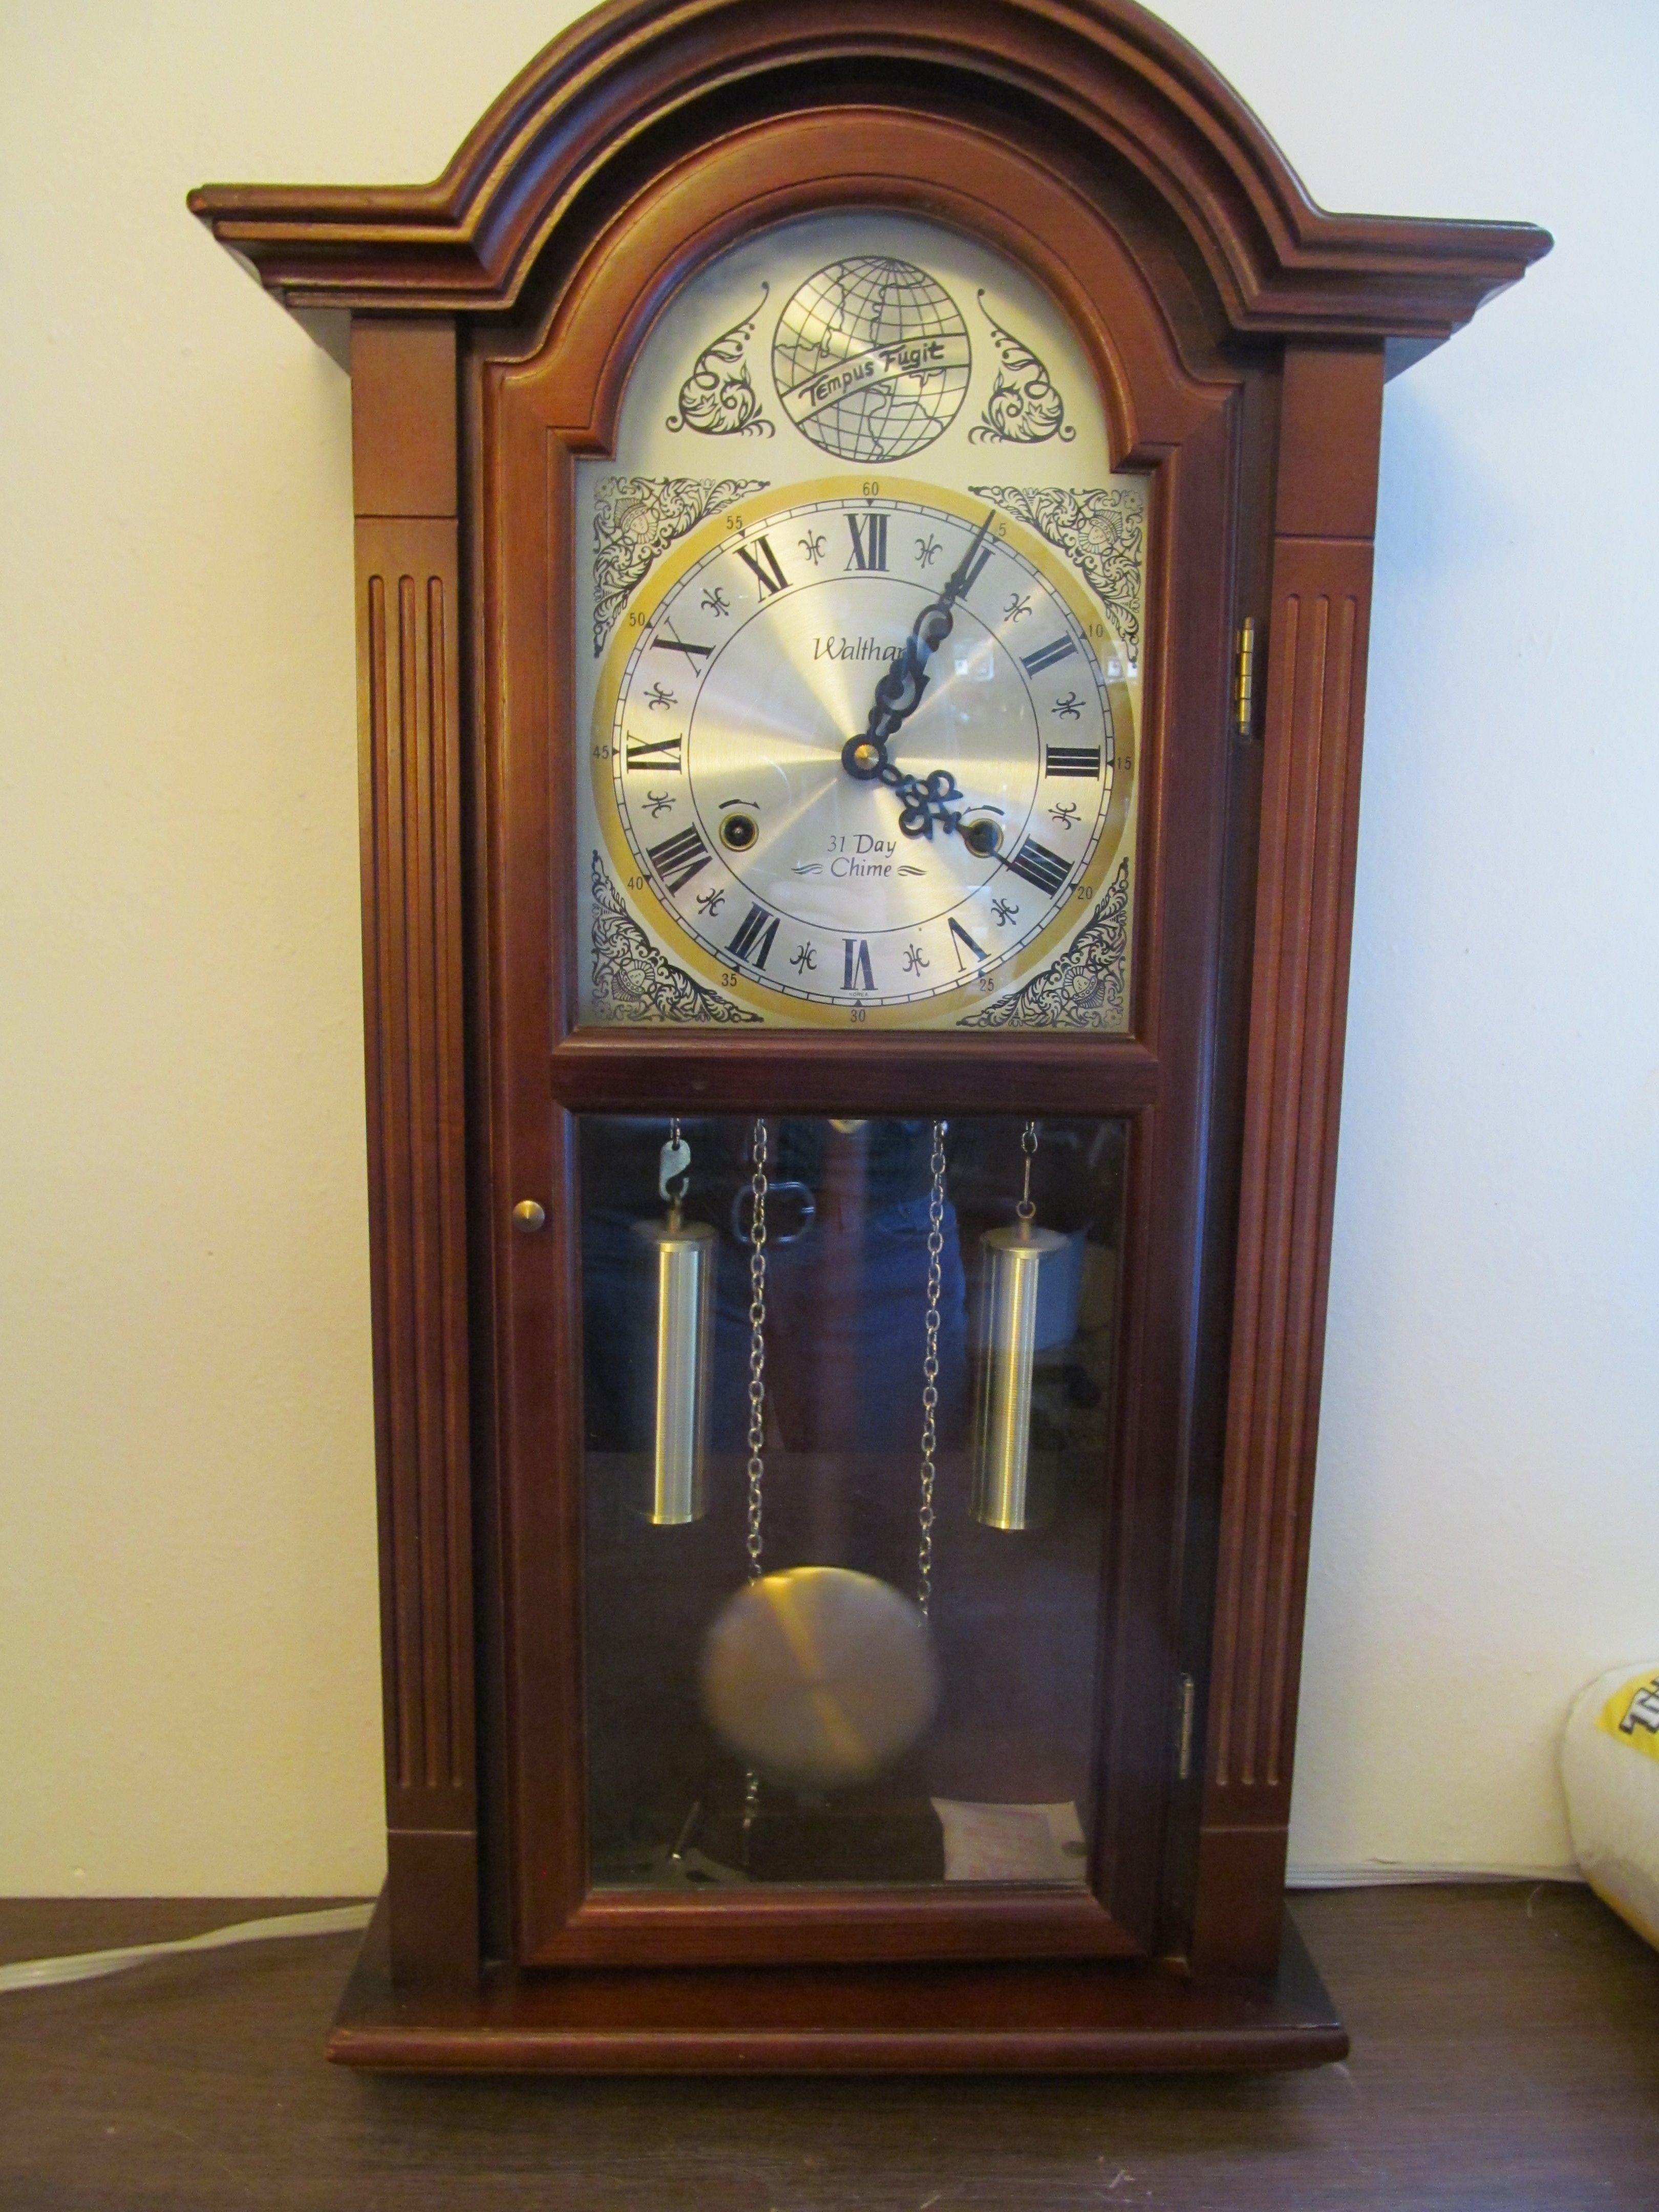 Waltham tempus fugit walnut pendulum 31 day chime 2 pipe wall waltham tempus fugit walnut pendulum 31 day chime 2 pipe wall clock amipublicfo Image collections